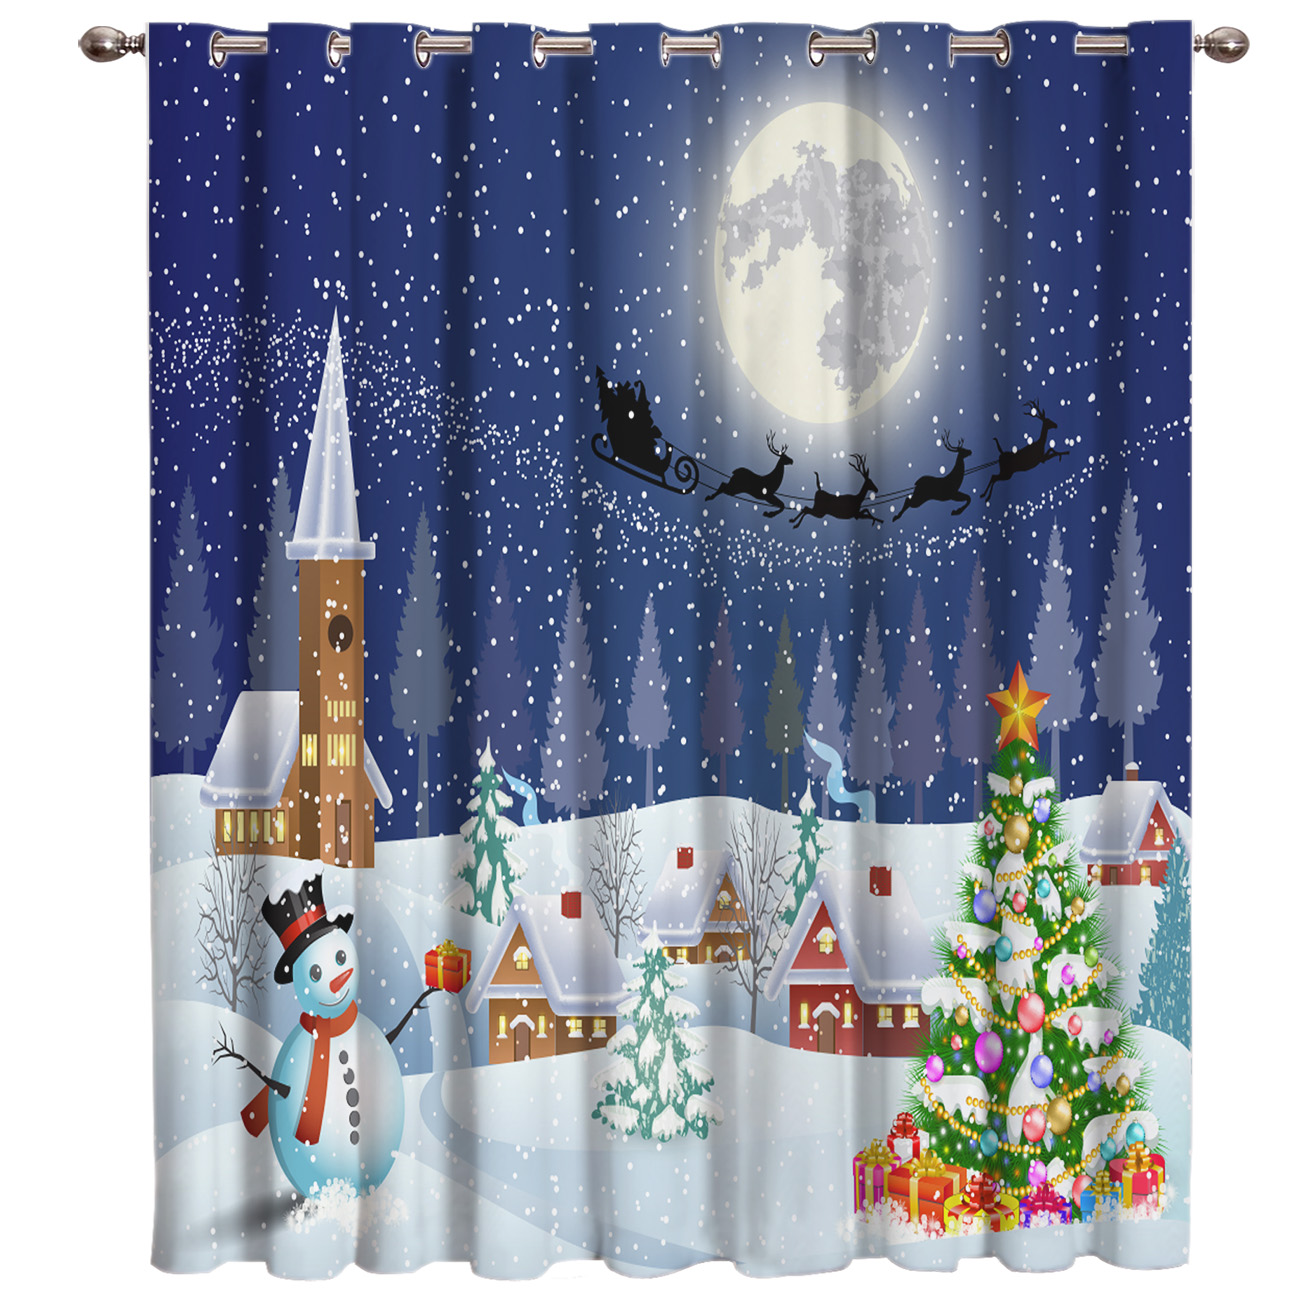 Merry Christams Snow Winter Decor Bathroom Bedroom Outdoor Kitchen Indoor Decor Kids Curtain Panels With Grommets Window